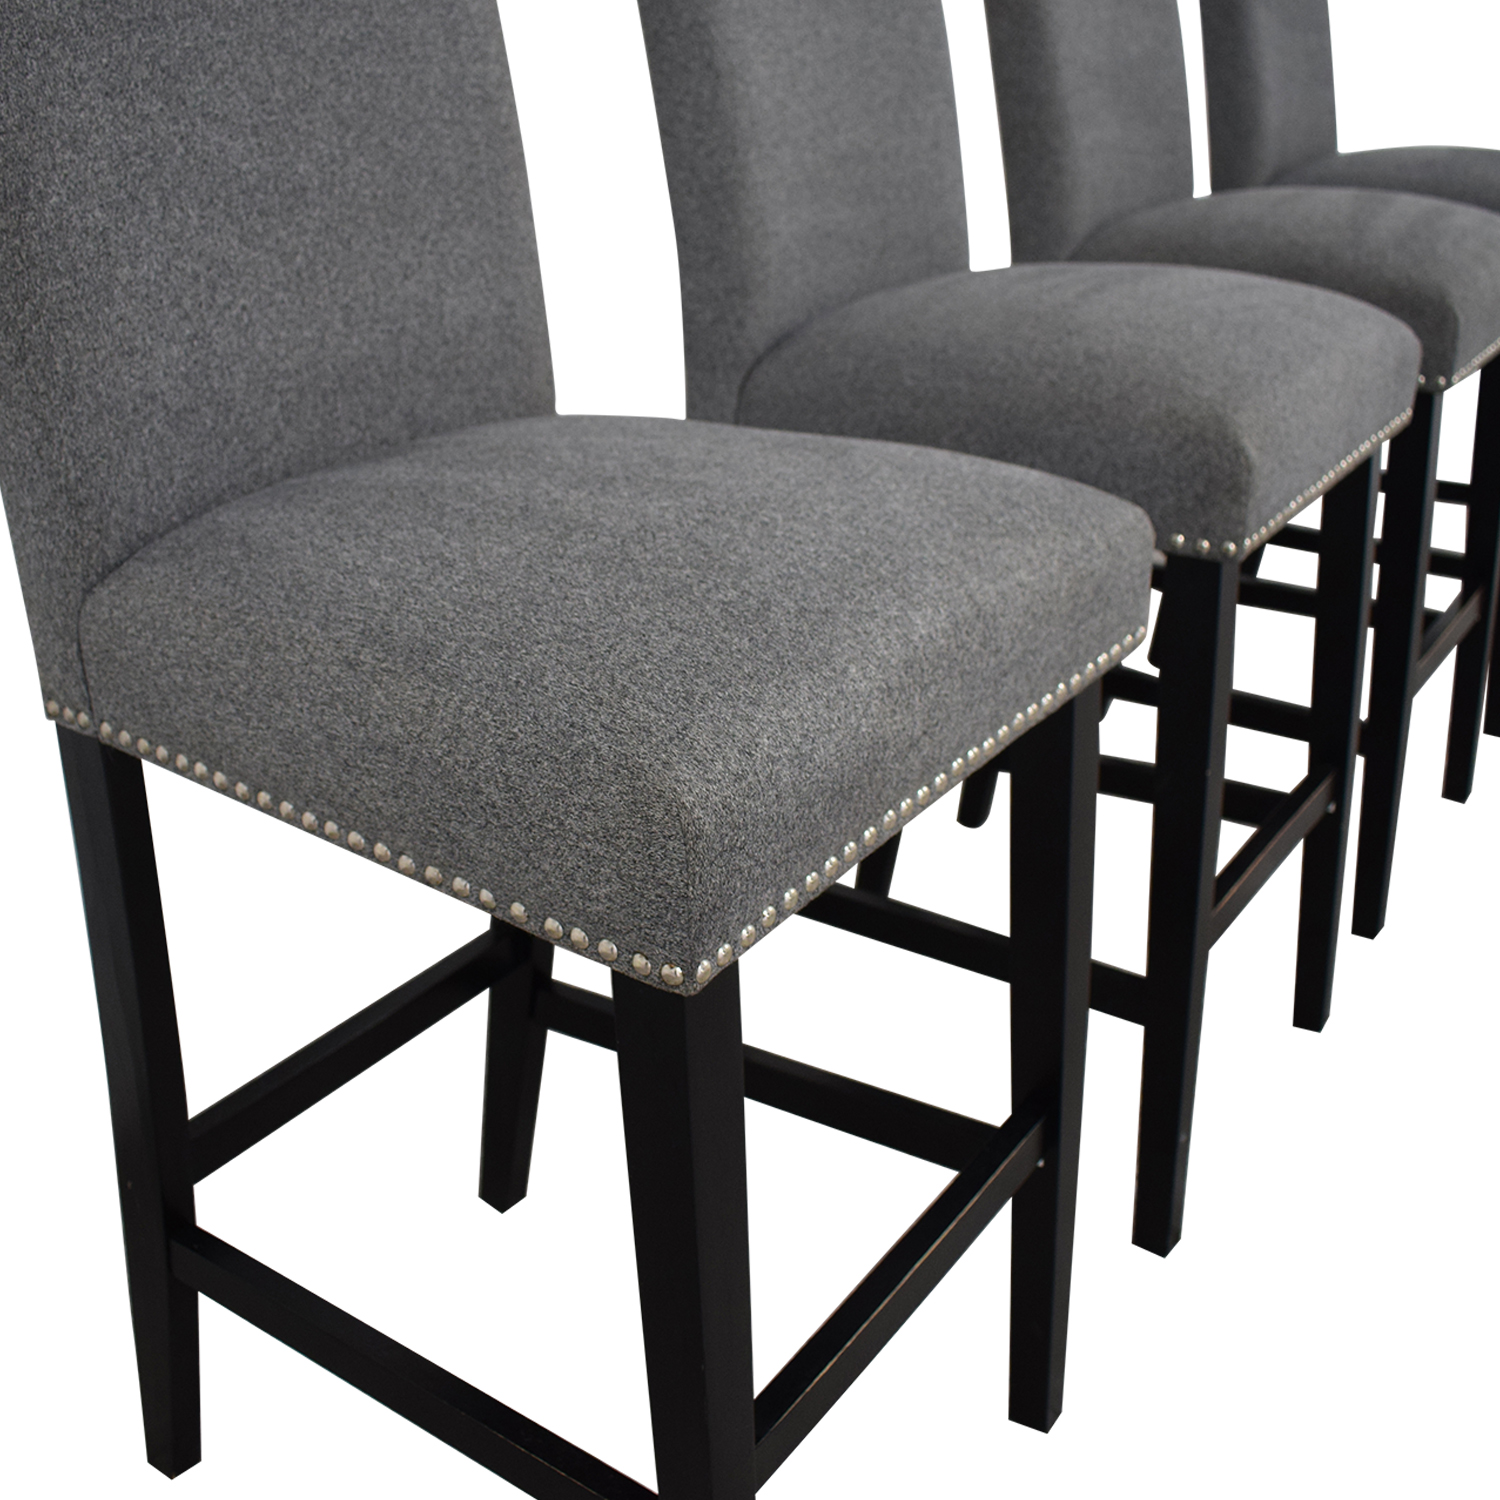 72 Off Grey Nailhead Upholstered Counter Stools Chairs